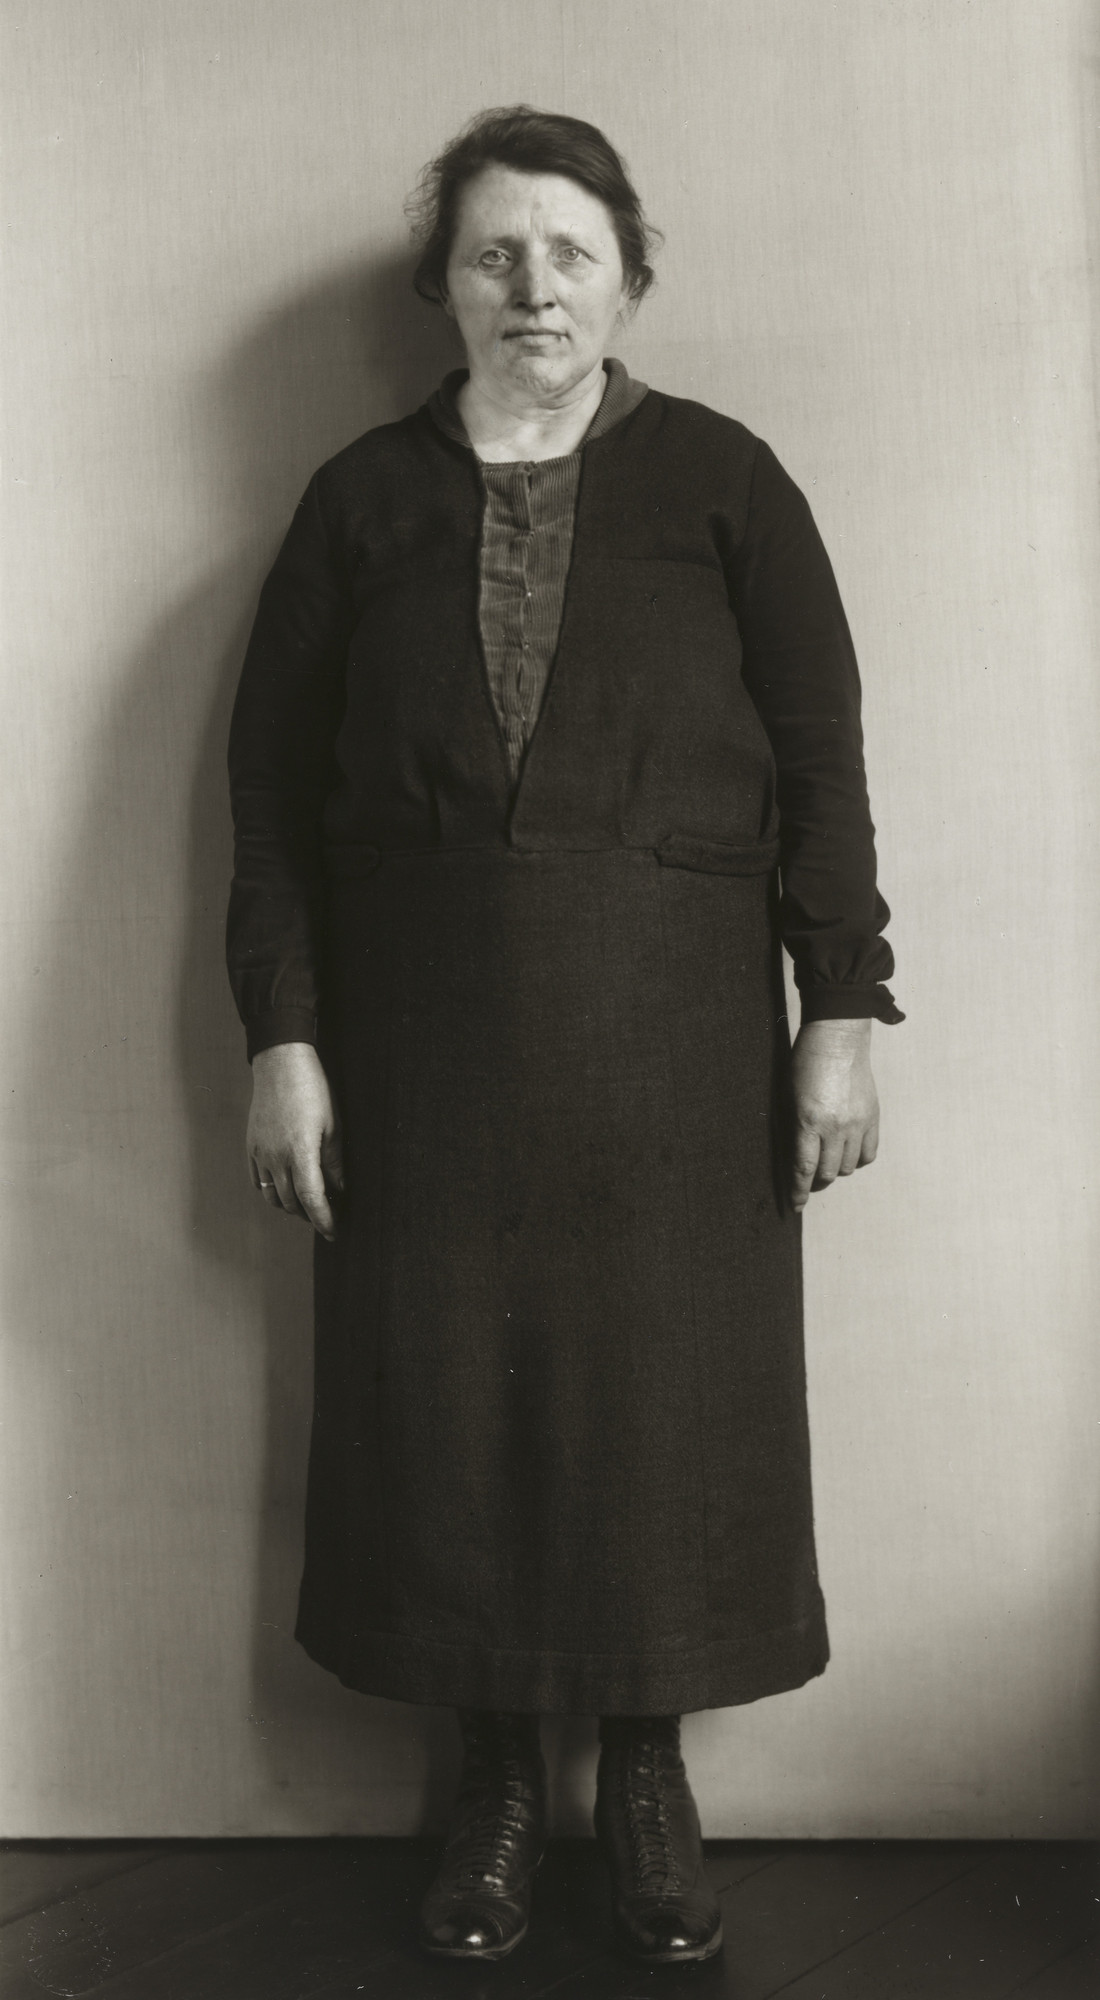 August Sander. Cleaning Woman. c. 1930